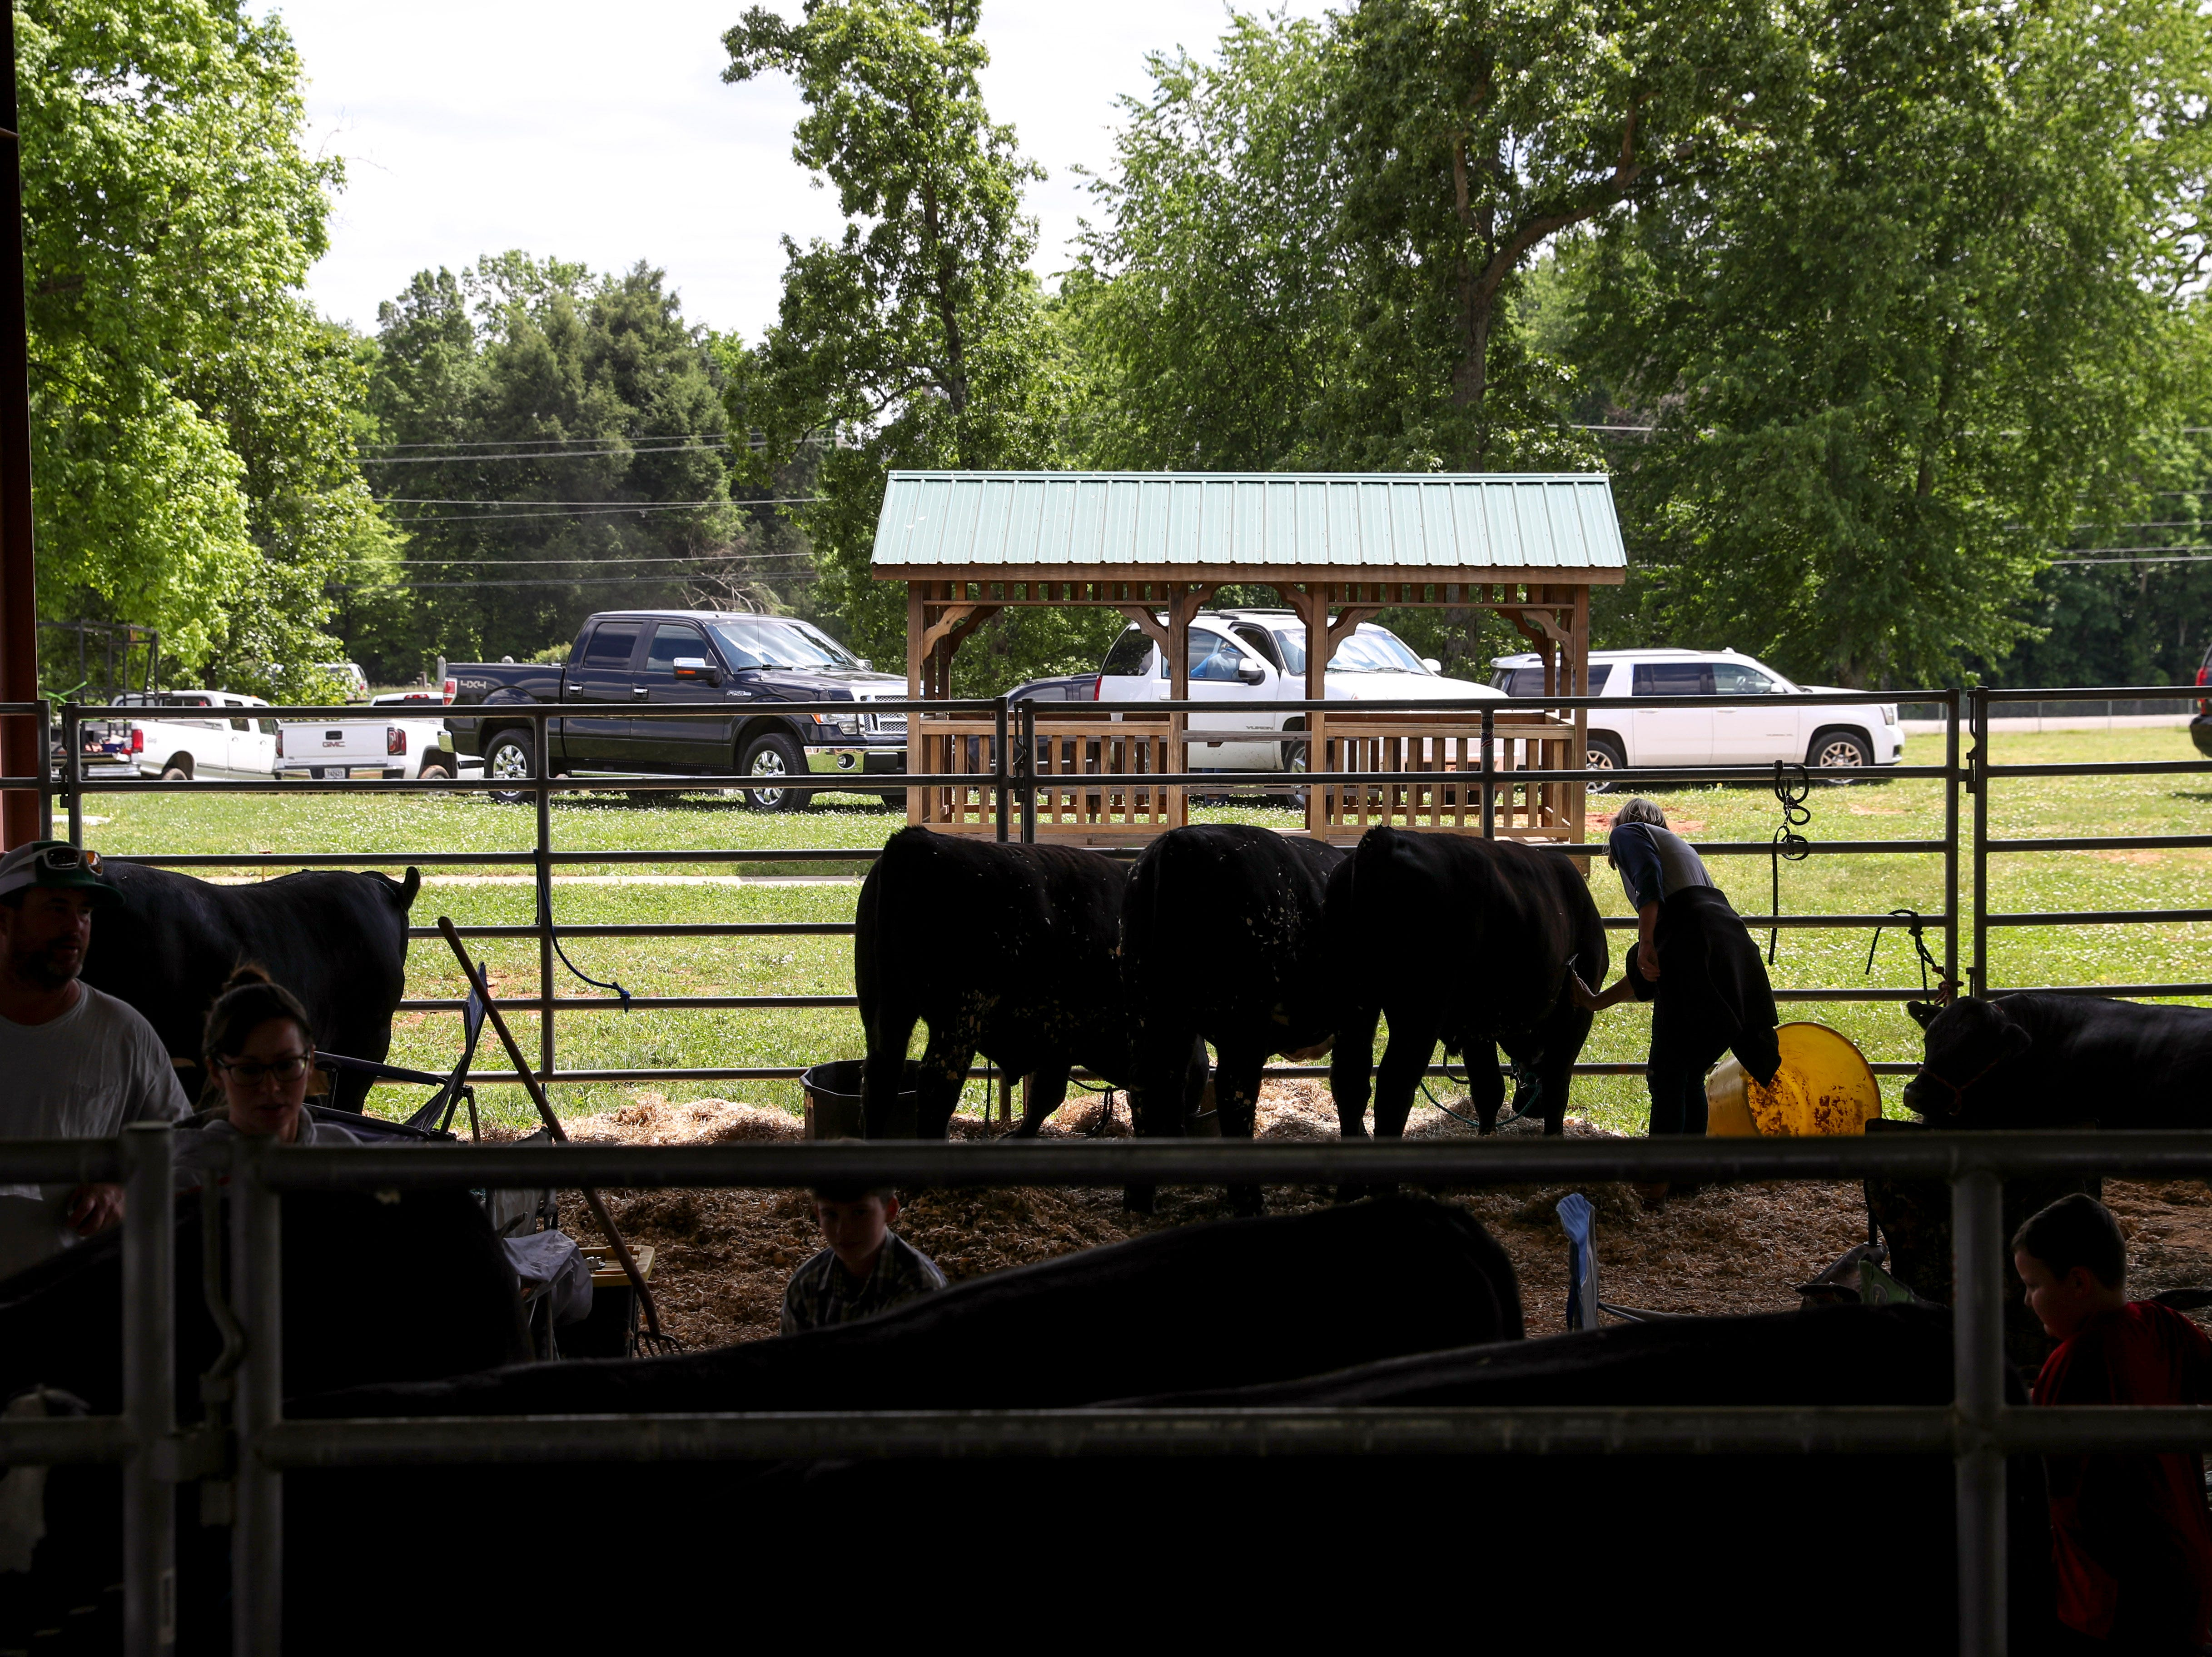 Owners clean off their steers during the auction at the 69th annual Clarksville Area Junior Better Beef Show at the John Bartee Agricultural Center in Clarksville, Tenn., on Tuesday, May 14, 2019.